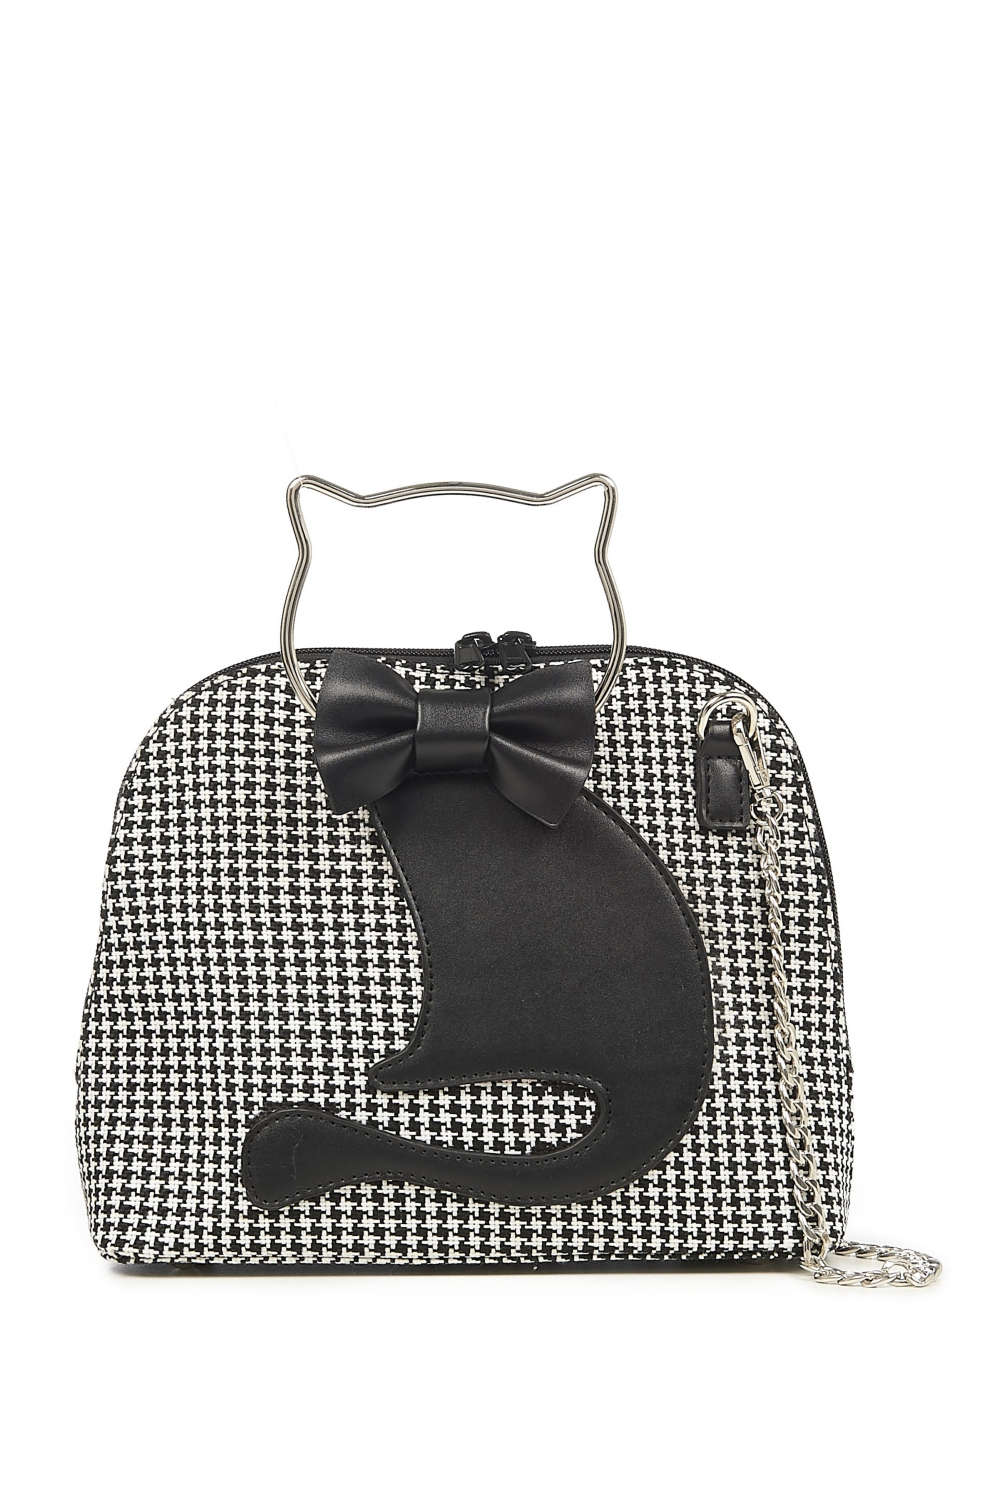 Banned Retro 50s Dixie Houndstooth Cat Bag